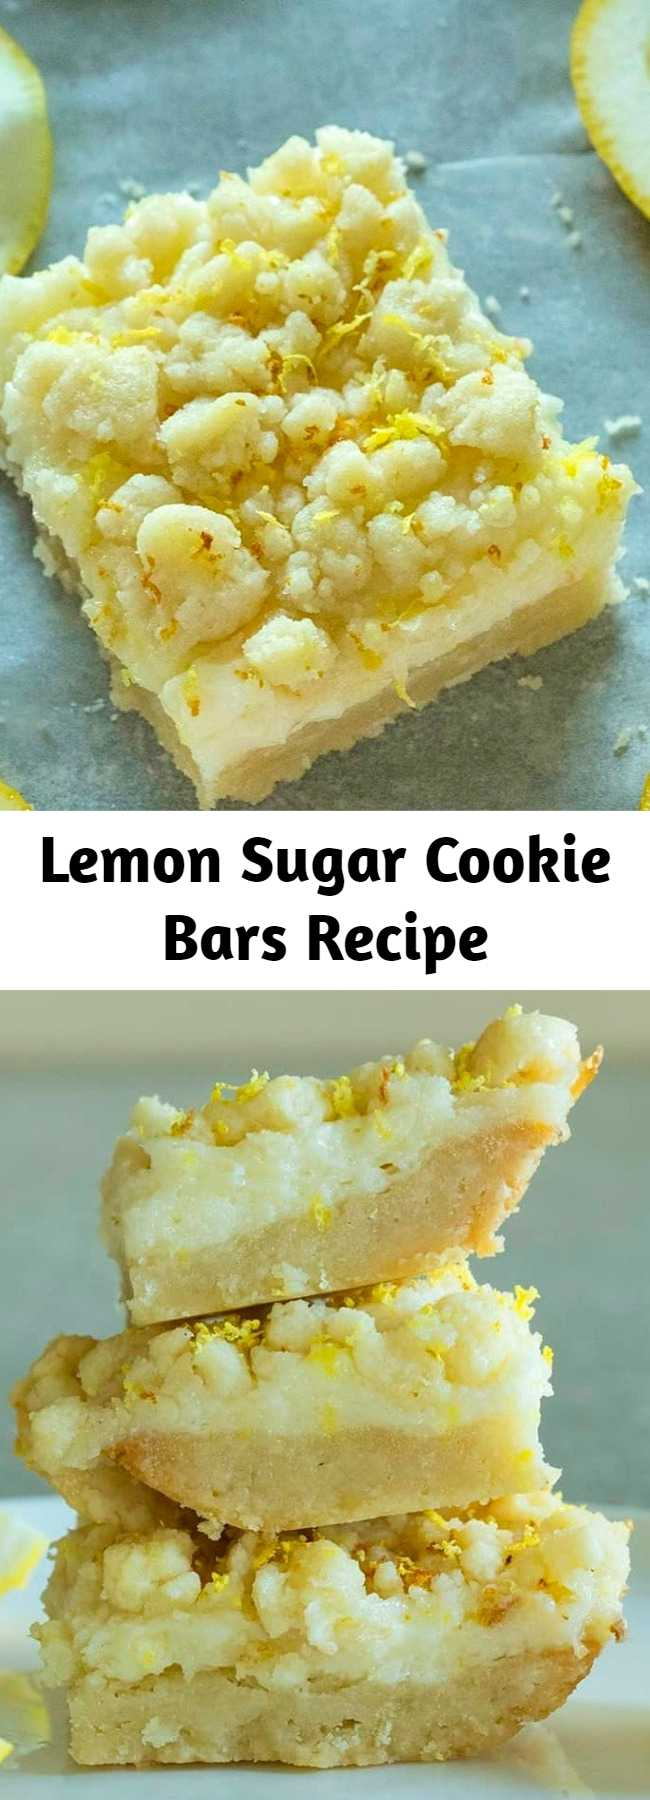 Lemon Sugar Cookie Bars Recipe - These easy lemon bars have a sweet sugar cookie crust topped with a tangy lemon cheesecake filling and then topped with more sugar cookie crumble. The perfect balance of sweet and tangy.